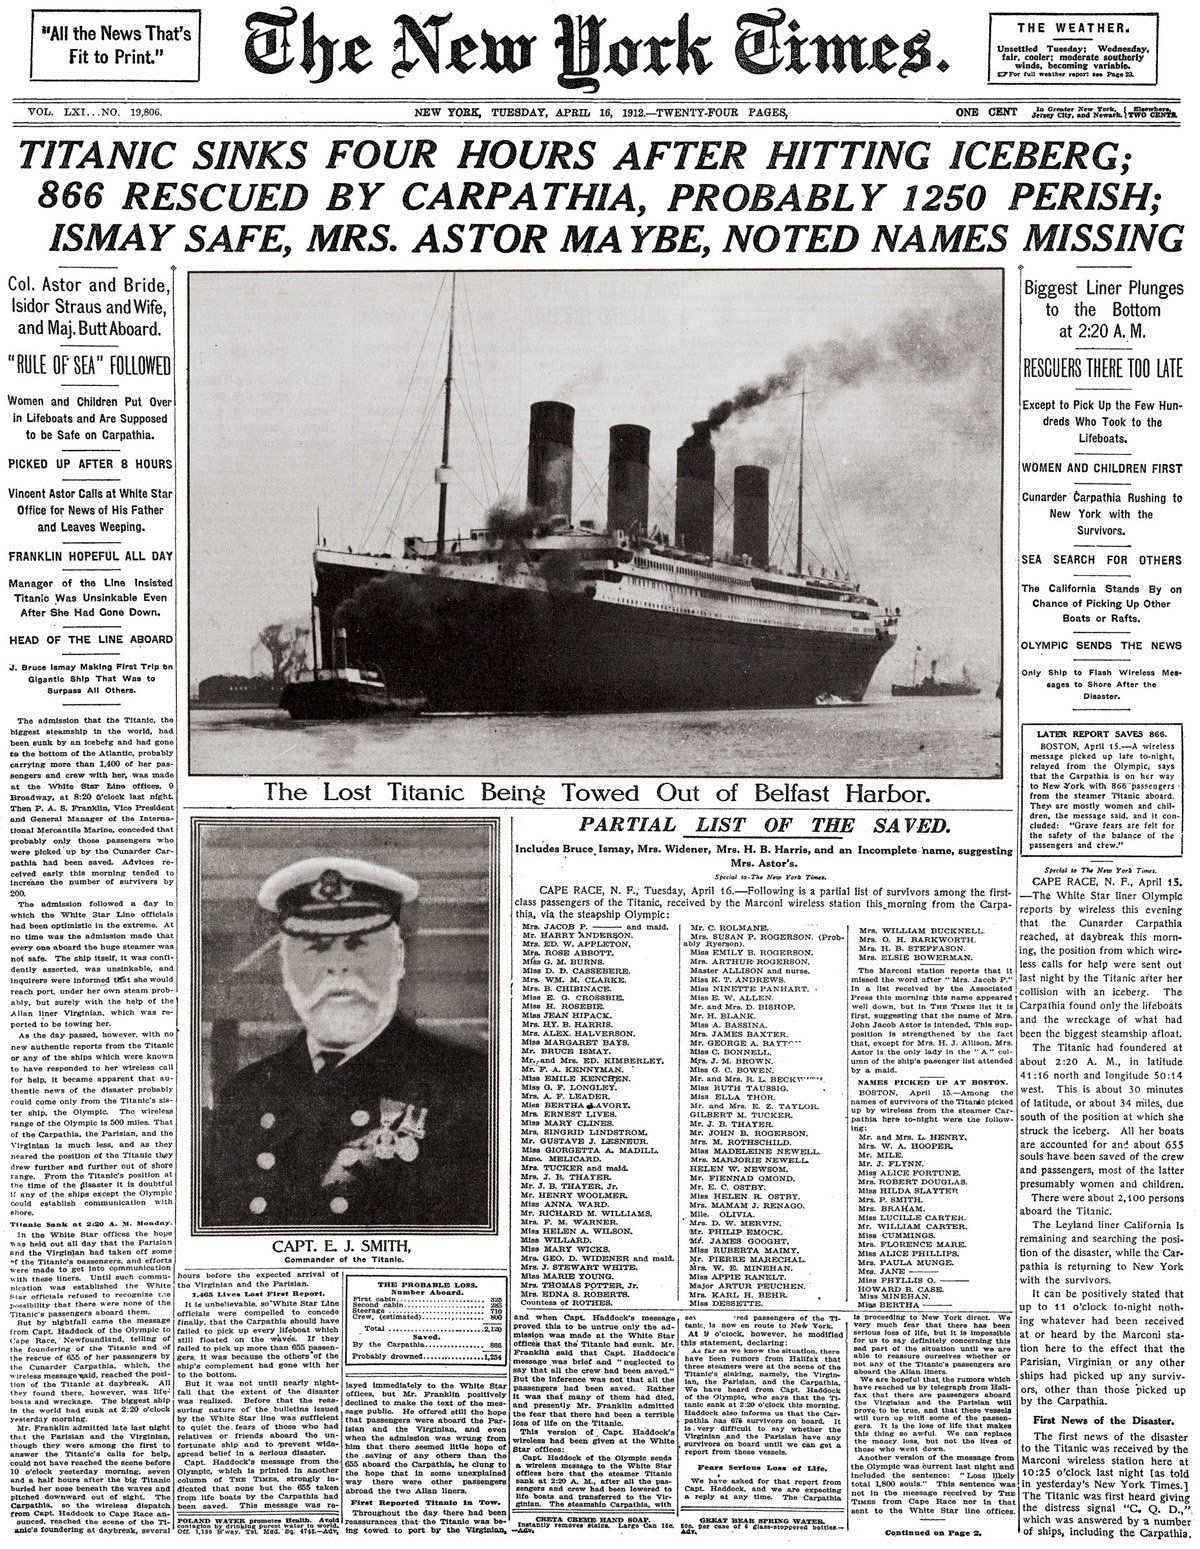 First class passenger's account of Titanic disaster finally published